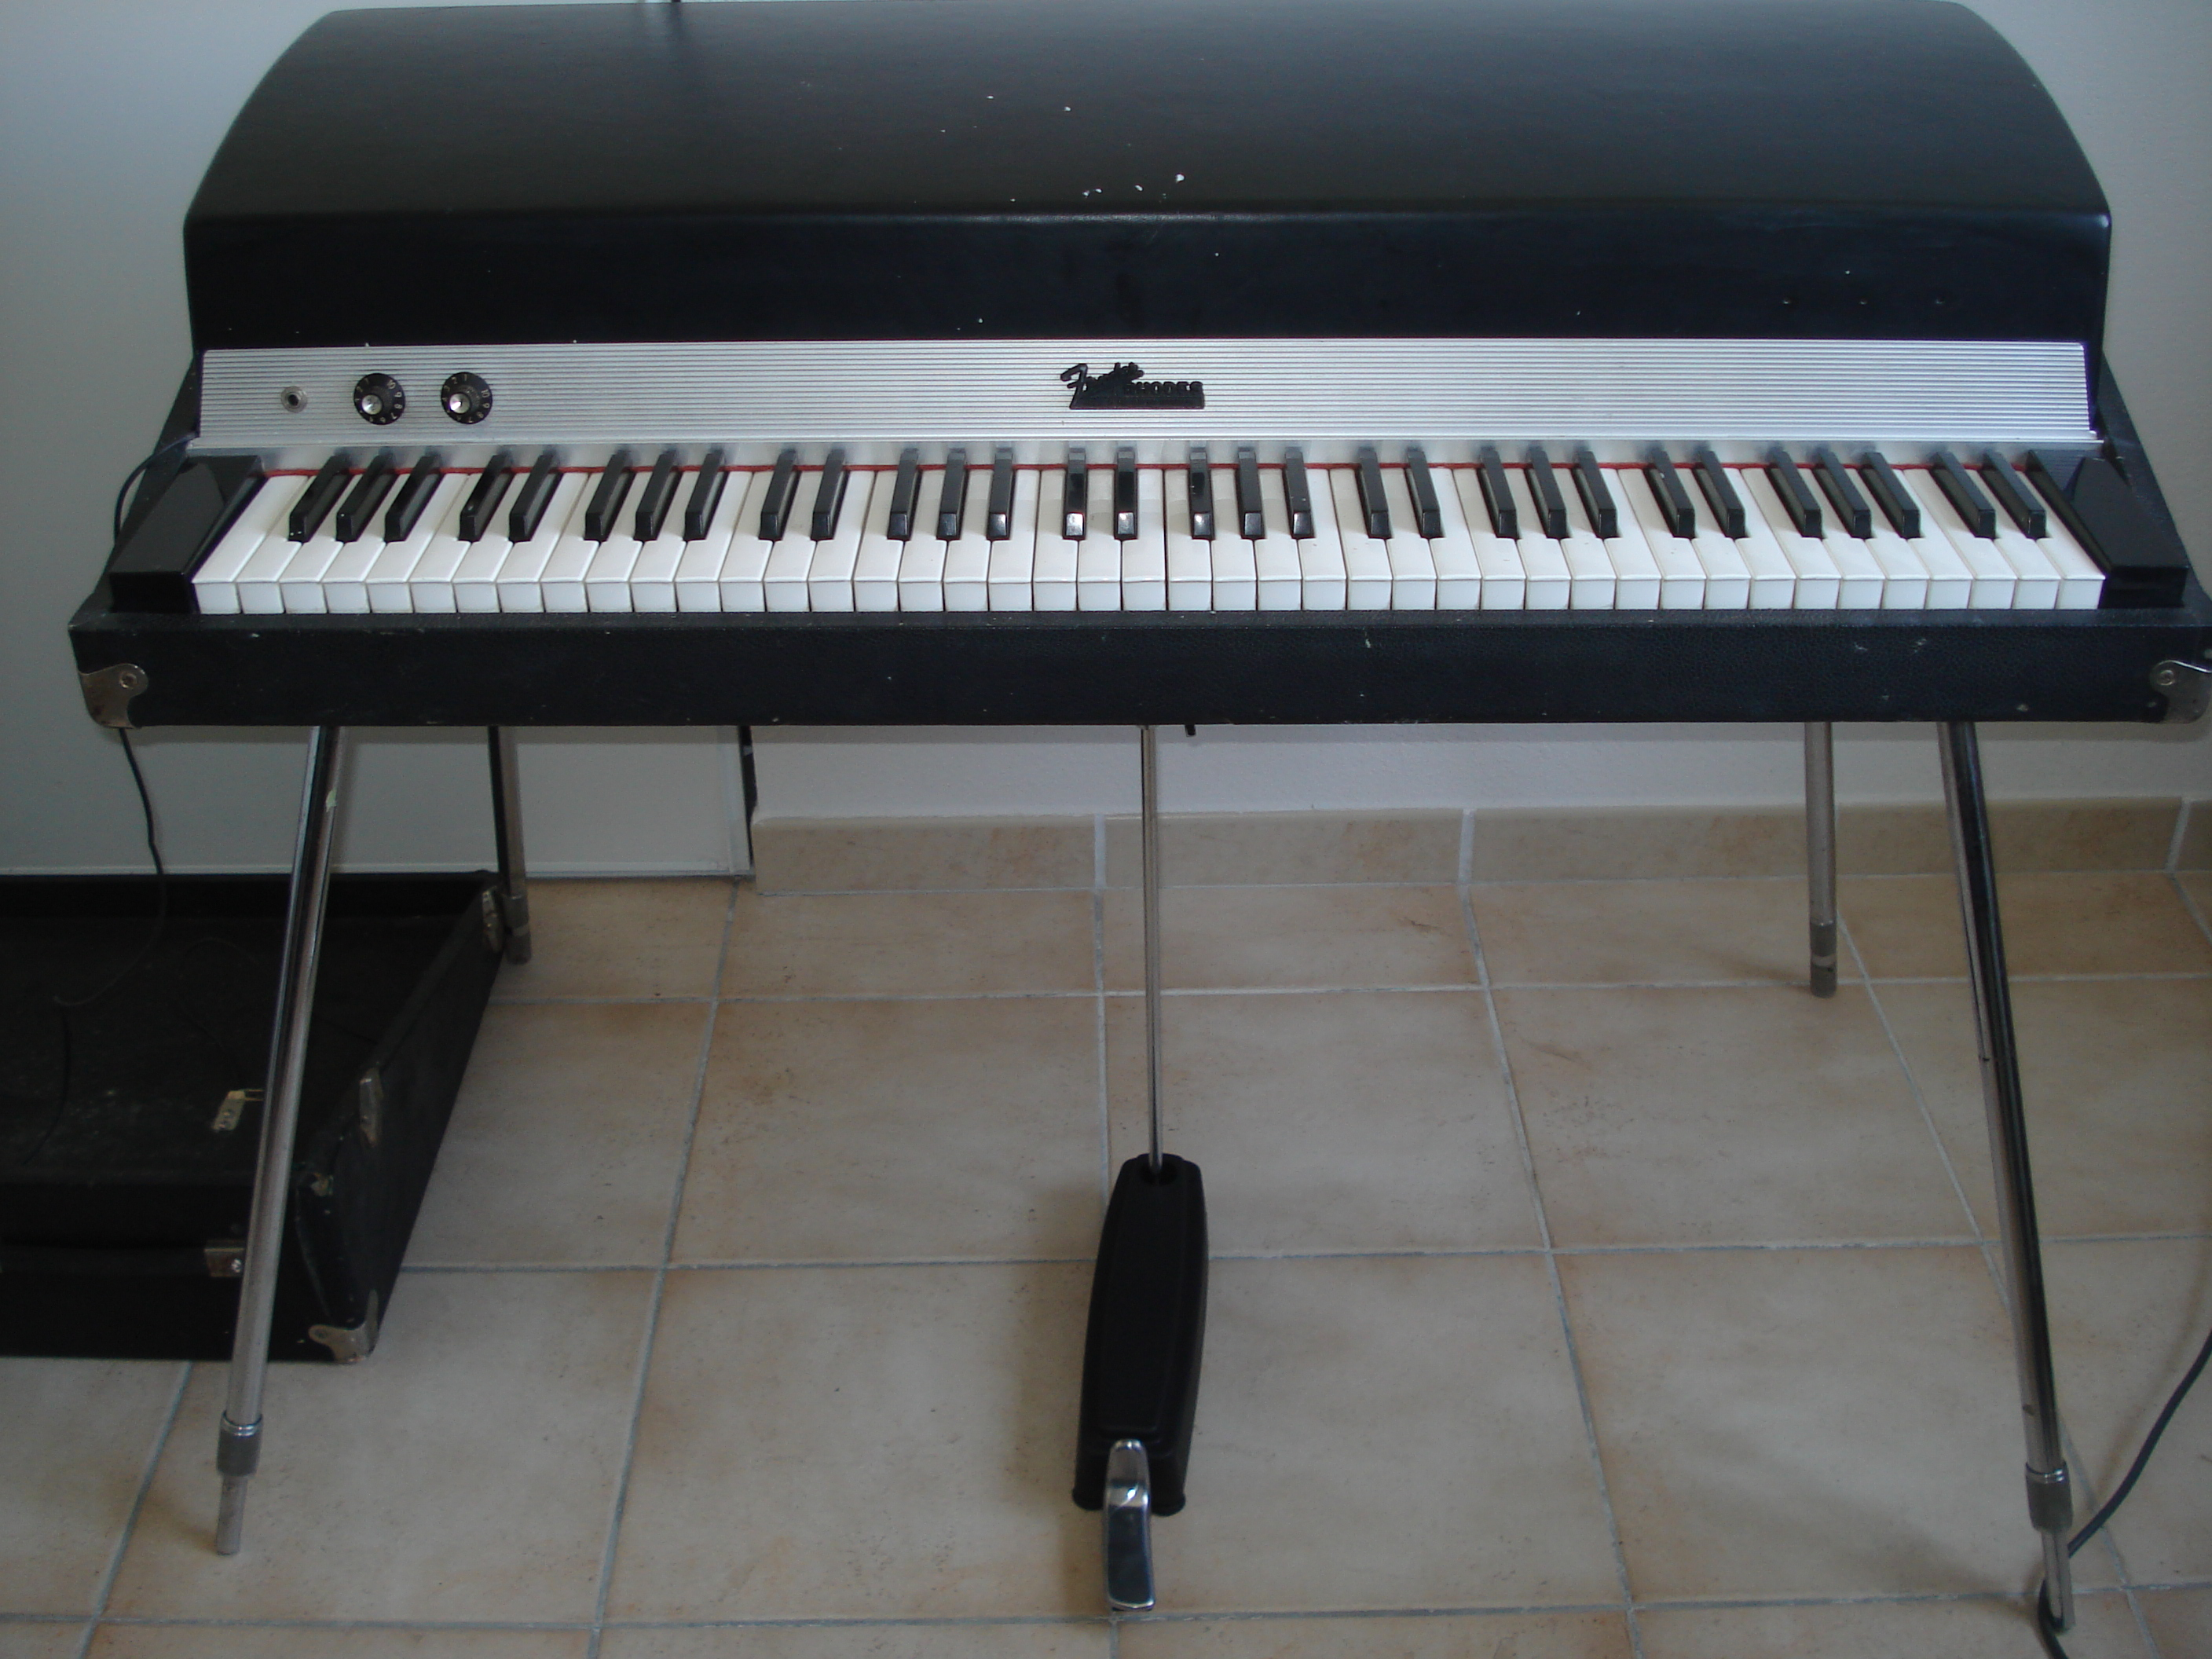 Fender Rhodes Mark I Stage Piano Image 652535